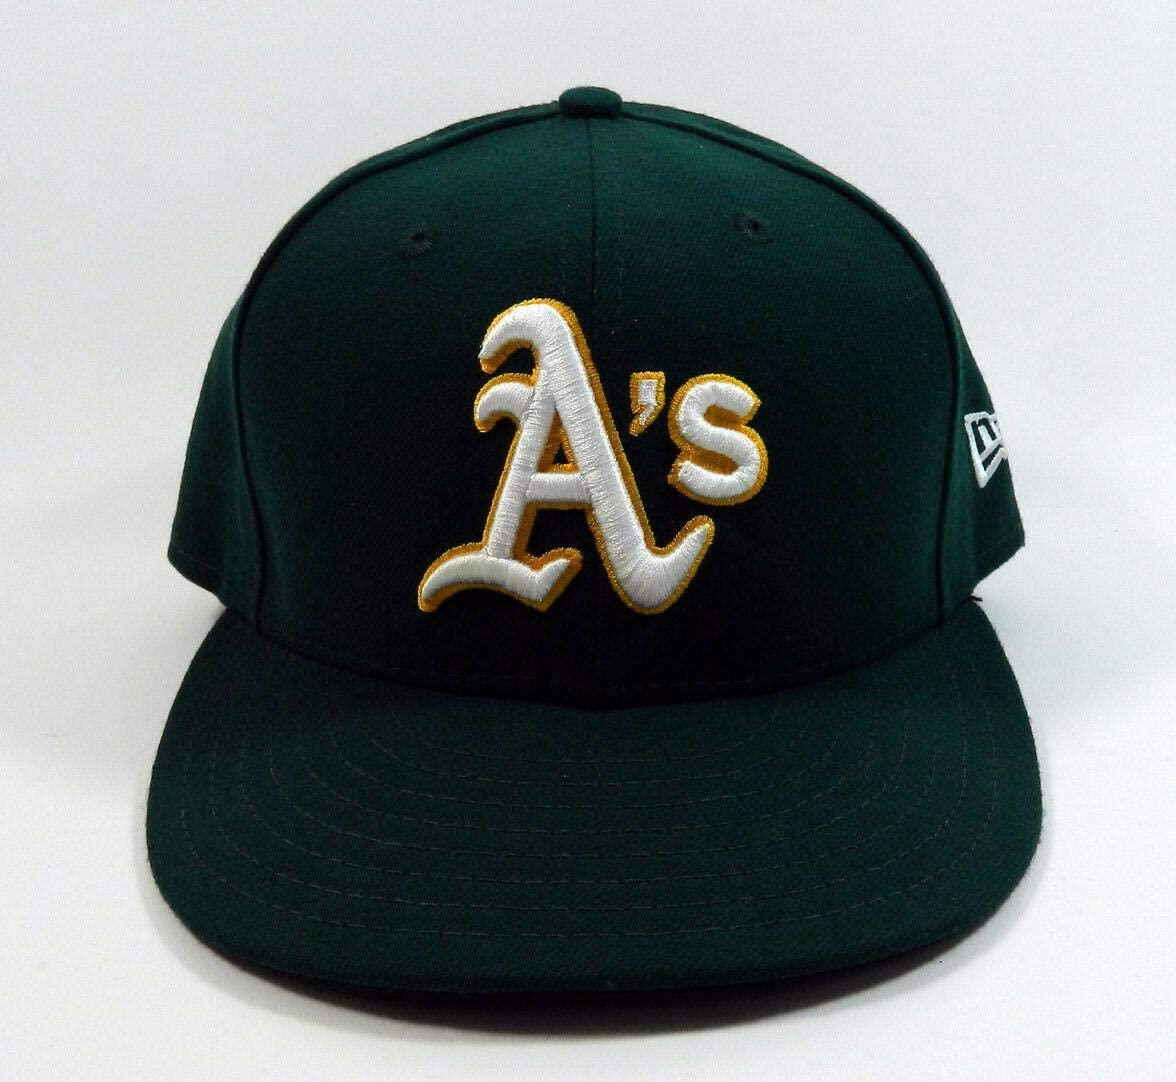 2019 Oakland Athletics A's J.B. Wendelken #57 Game Issued Green Hat JD487852 - MLB Game Used